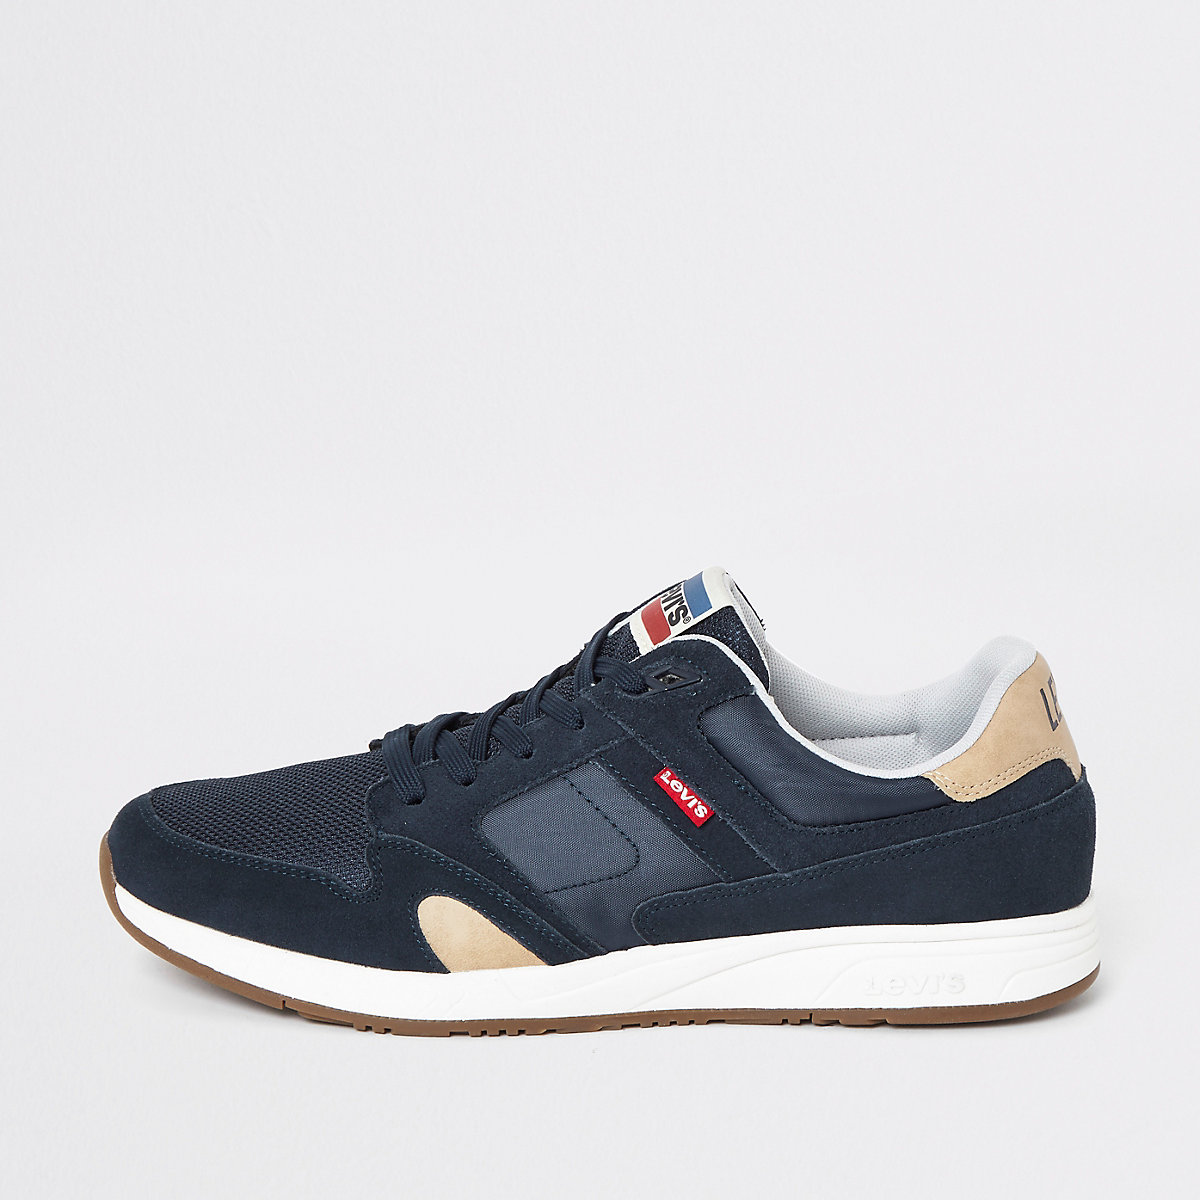 Levi's navy Sutter lace-up sneakers